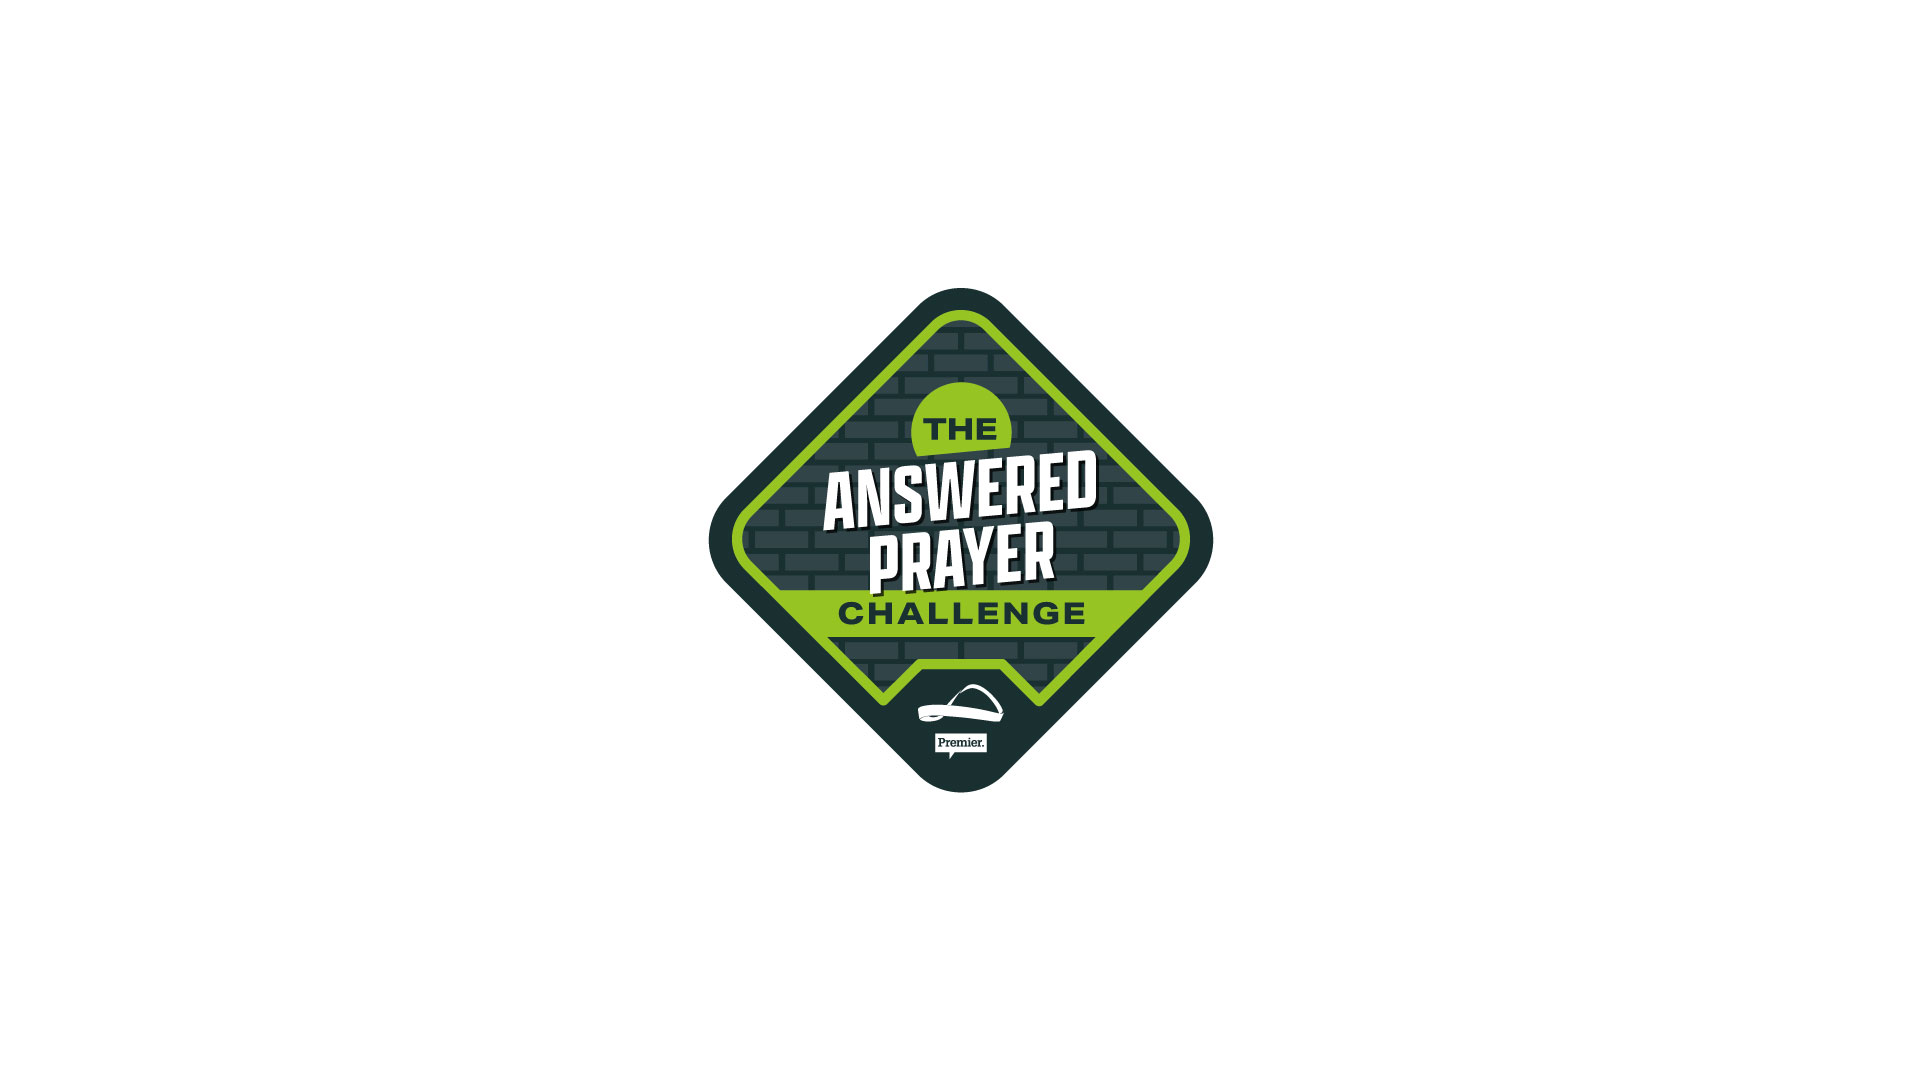 The Eternal Wall of Answered Prayer Issues 'The Answered Prayer Challenge' Urging Christians to Share Stories of Hope Online